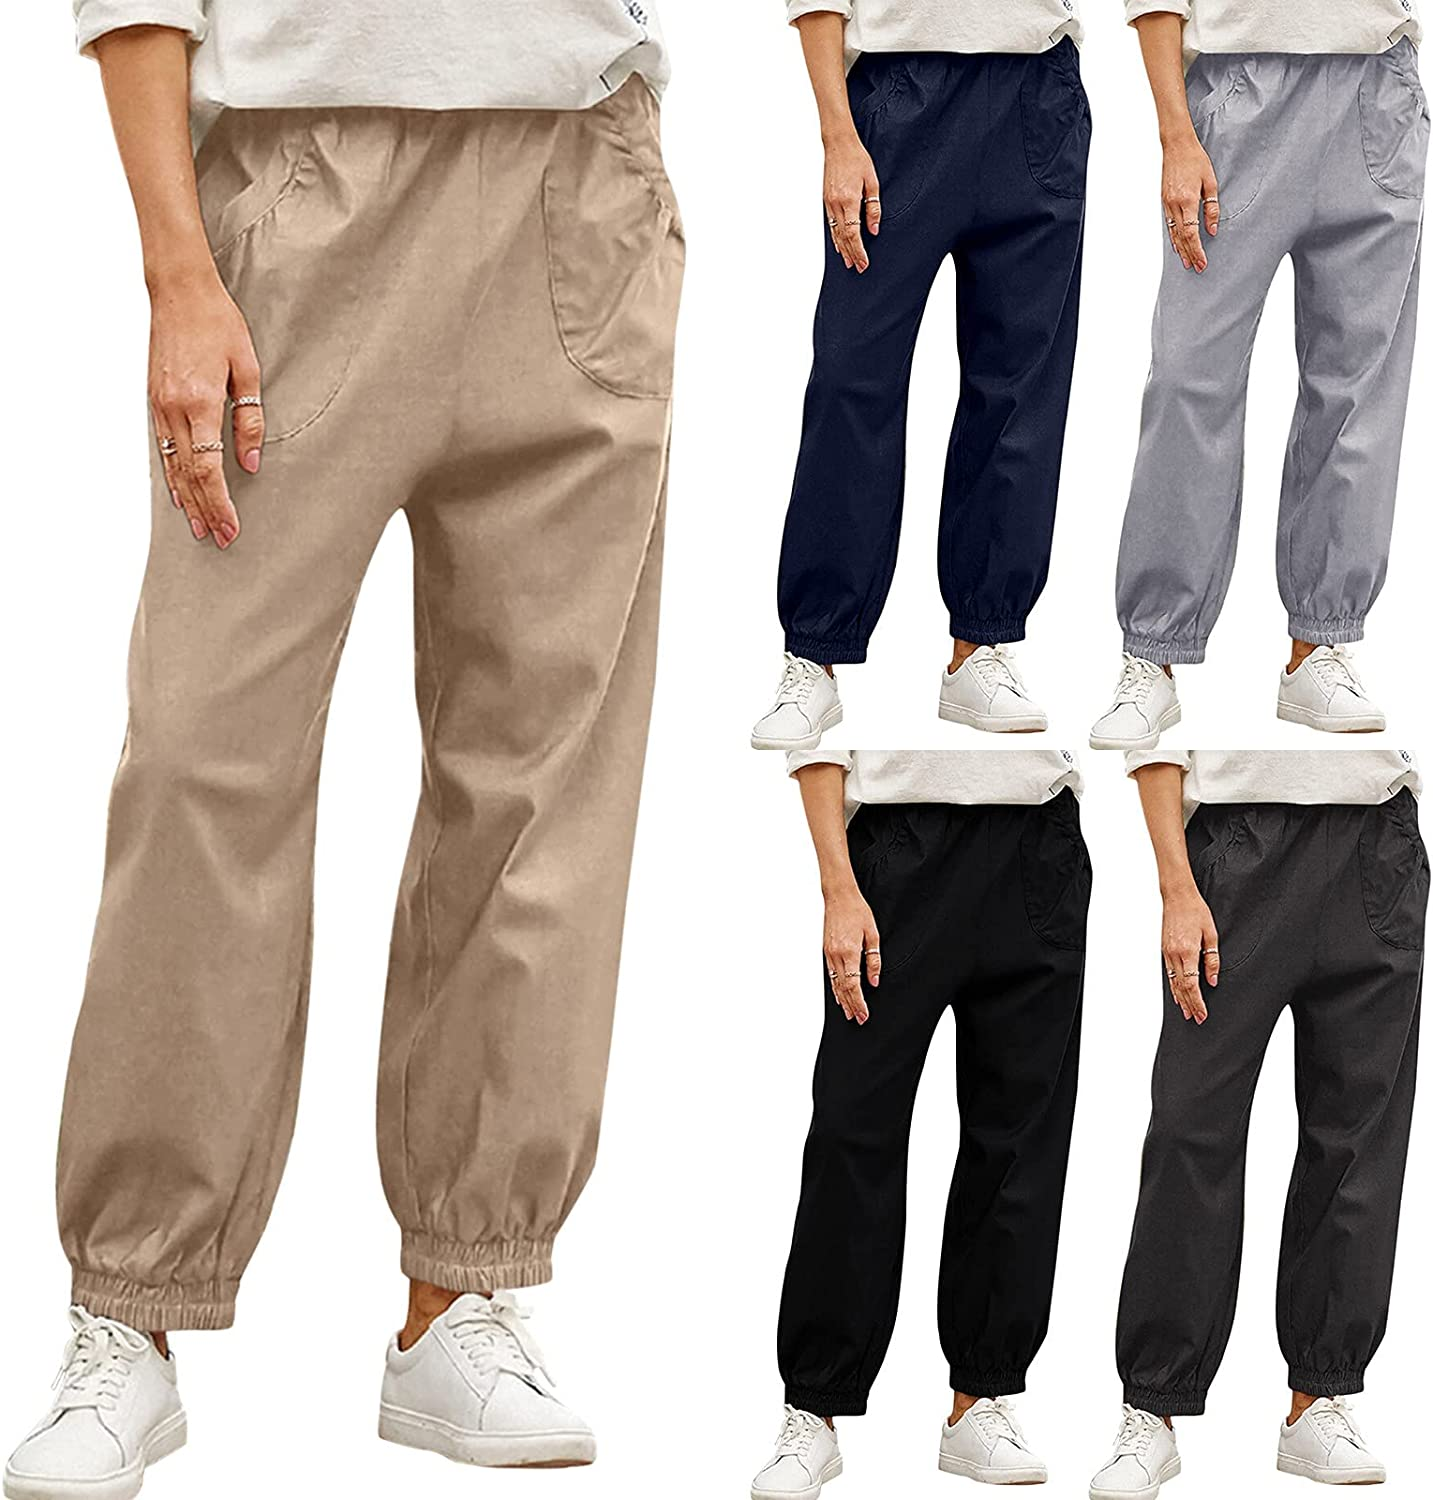 FANGTION Pants for Women High Waist Pants Casual Cotton Capri Cargo Pants Work Casual Trousers High Waisted Pleated Trousers